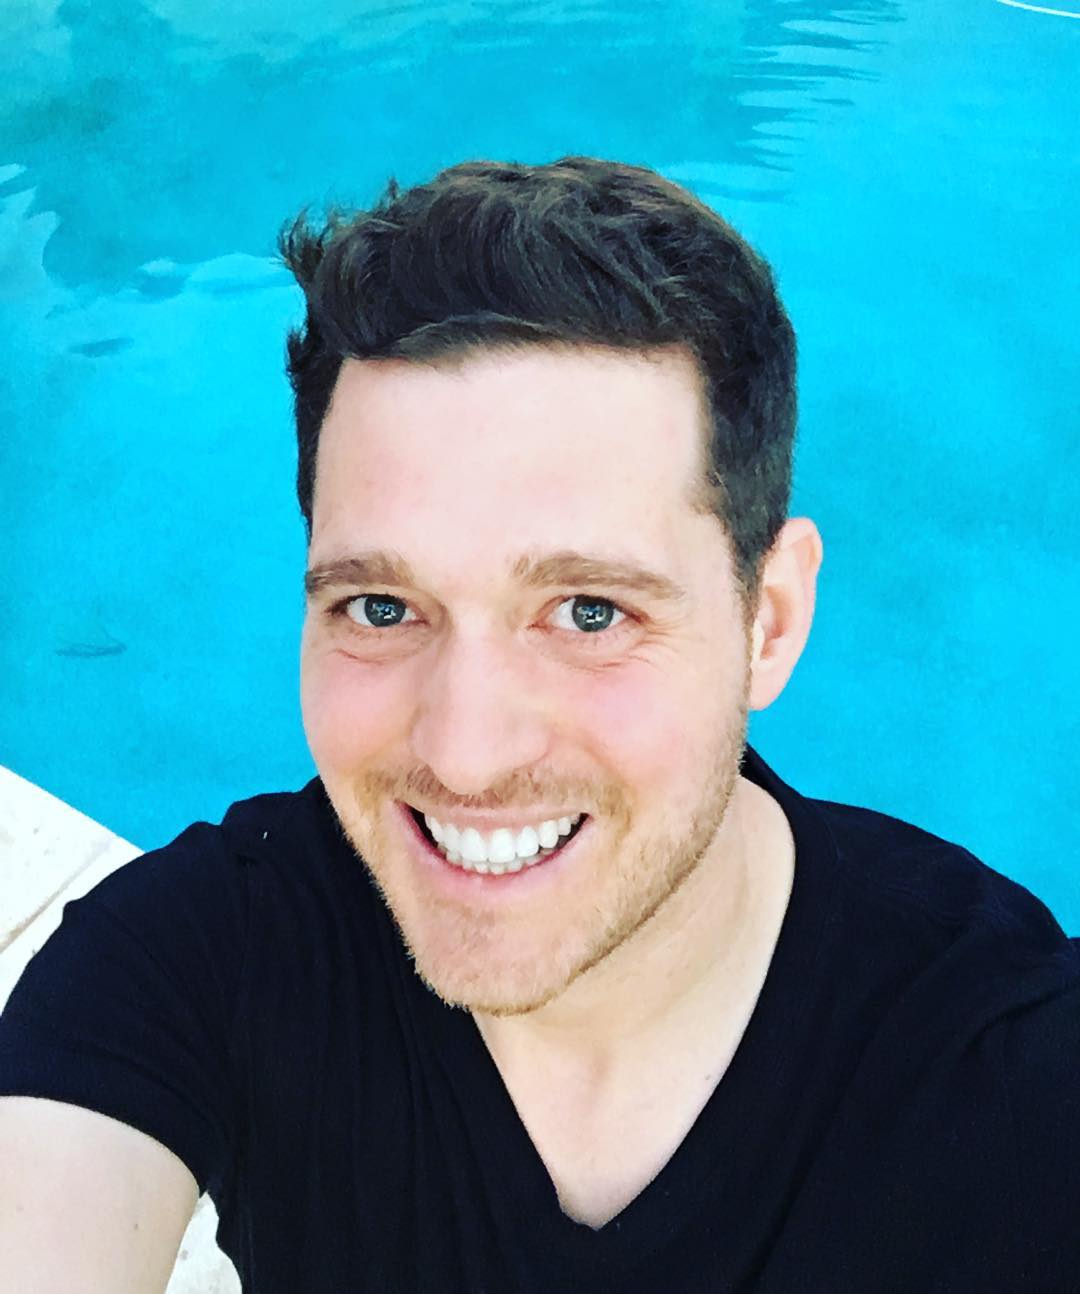 Michael Bublé Instagram: And just like that ... Hawaiian vacation over ...as nice as it was , it's time t...